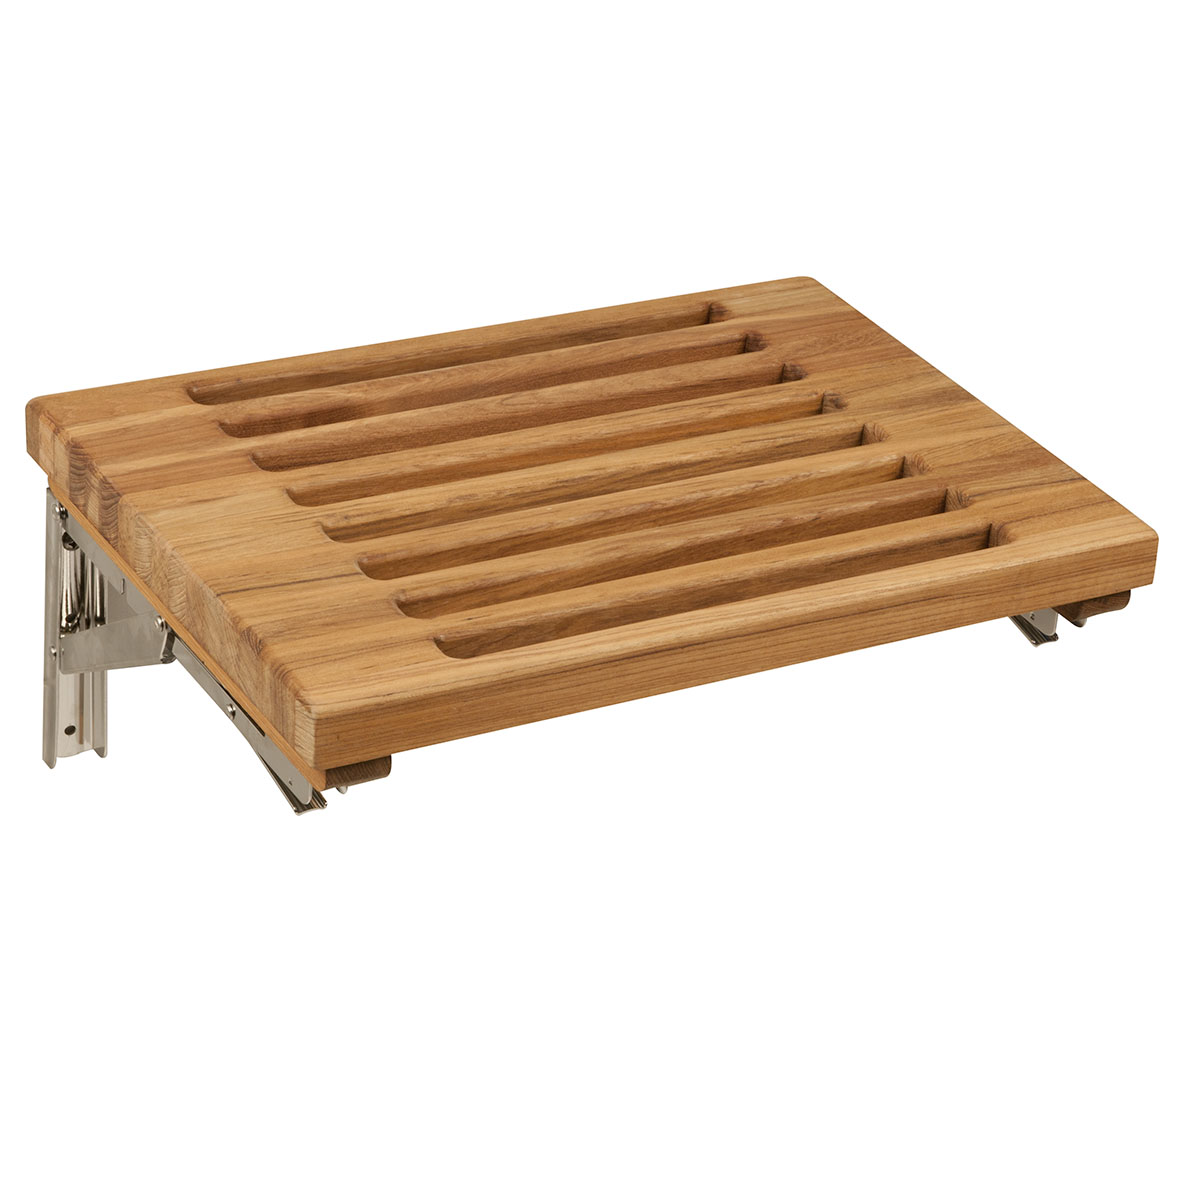 Teak Shower Bench Sale - Discount Prices + Free Shipping!